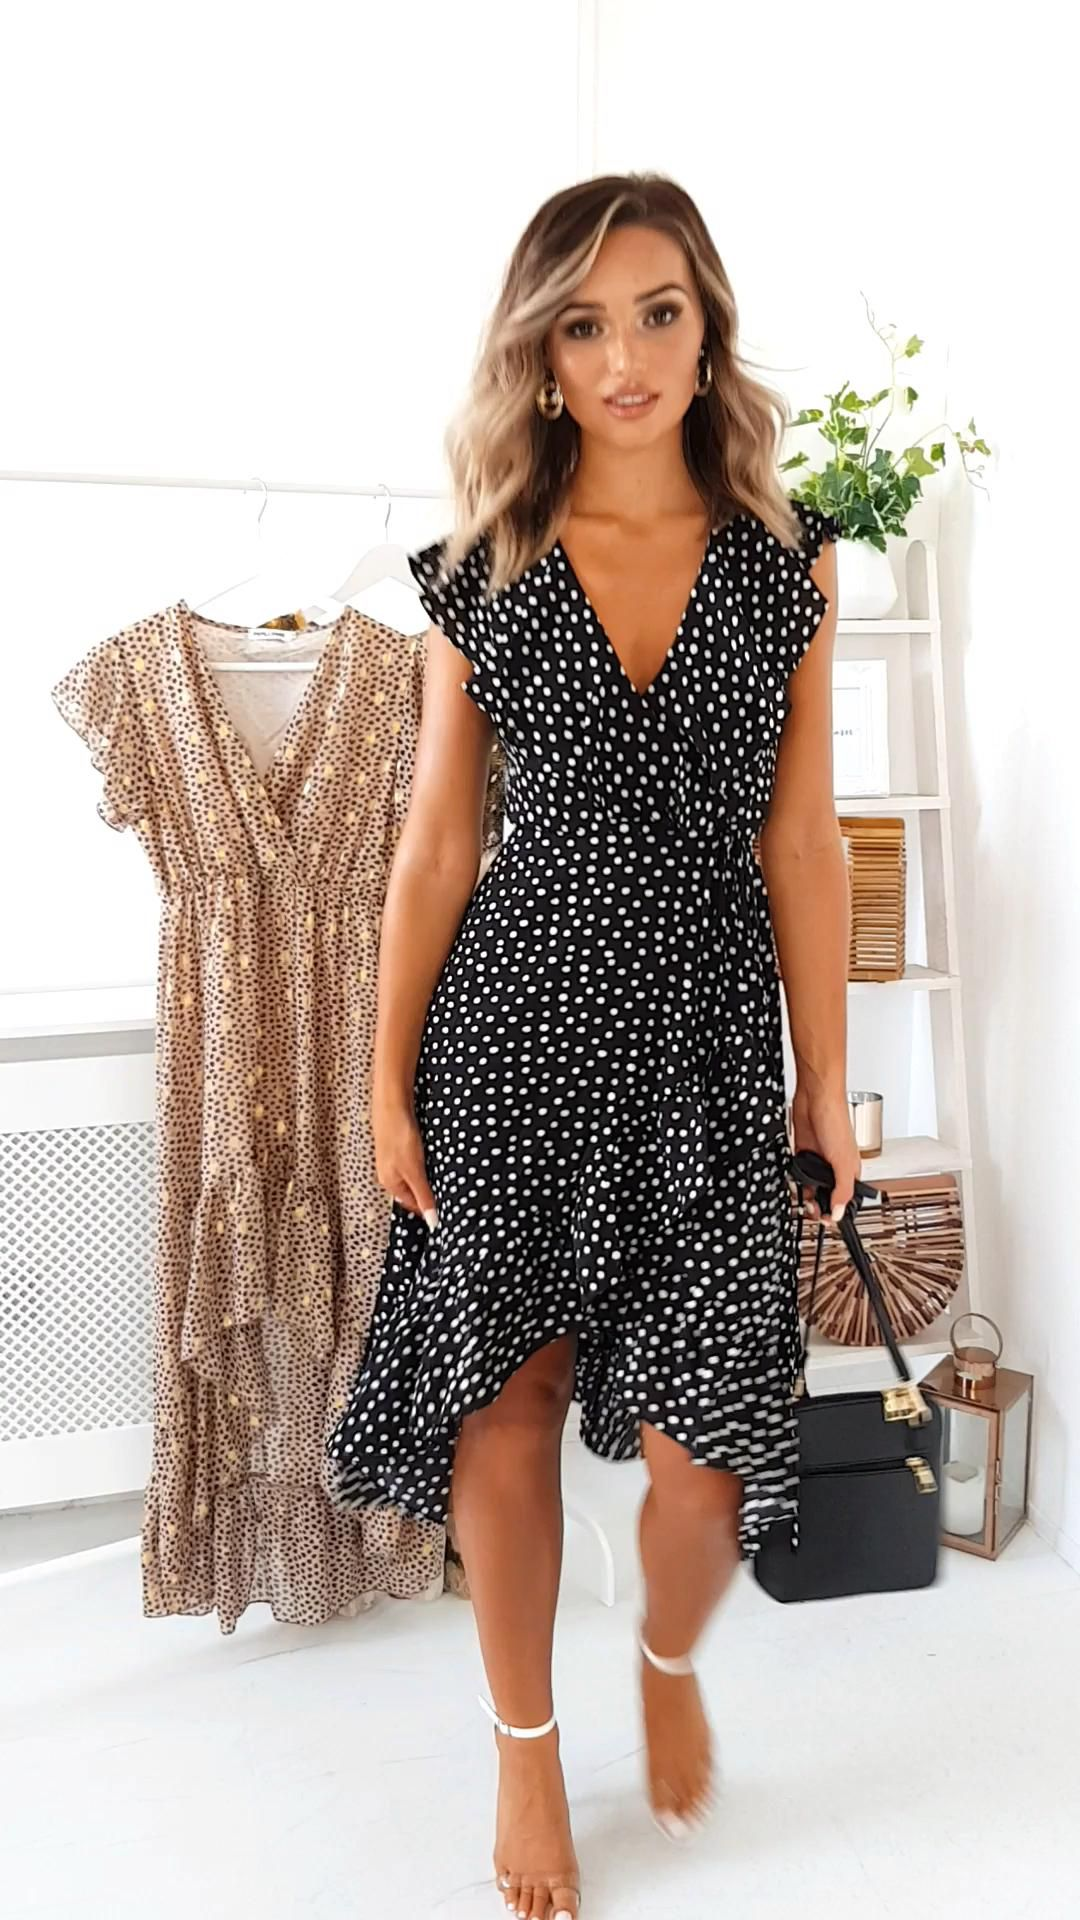 Wrap Dresses In 2020 Fashion Dresses Casual Wrap Dress Outfit Long Dress Casual